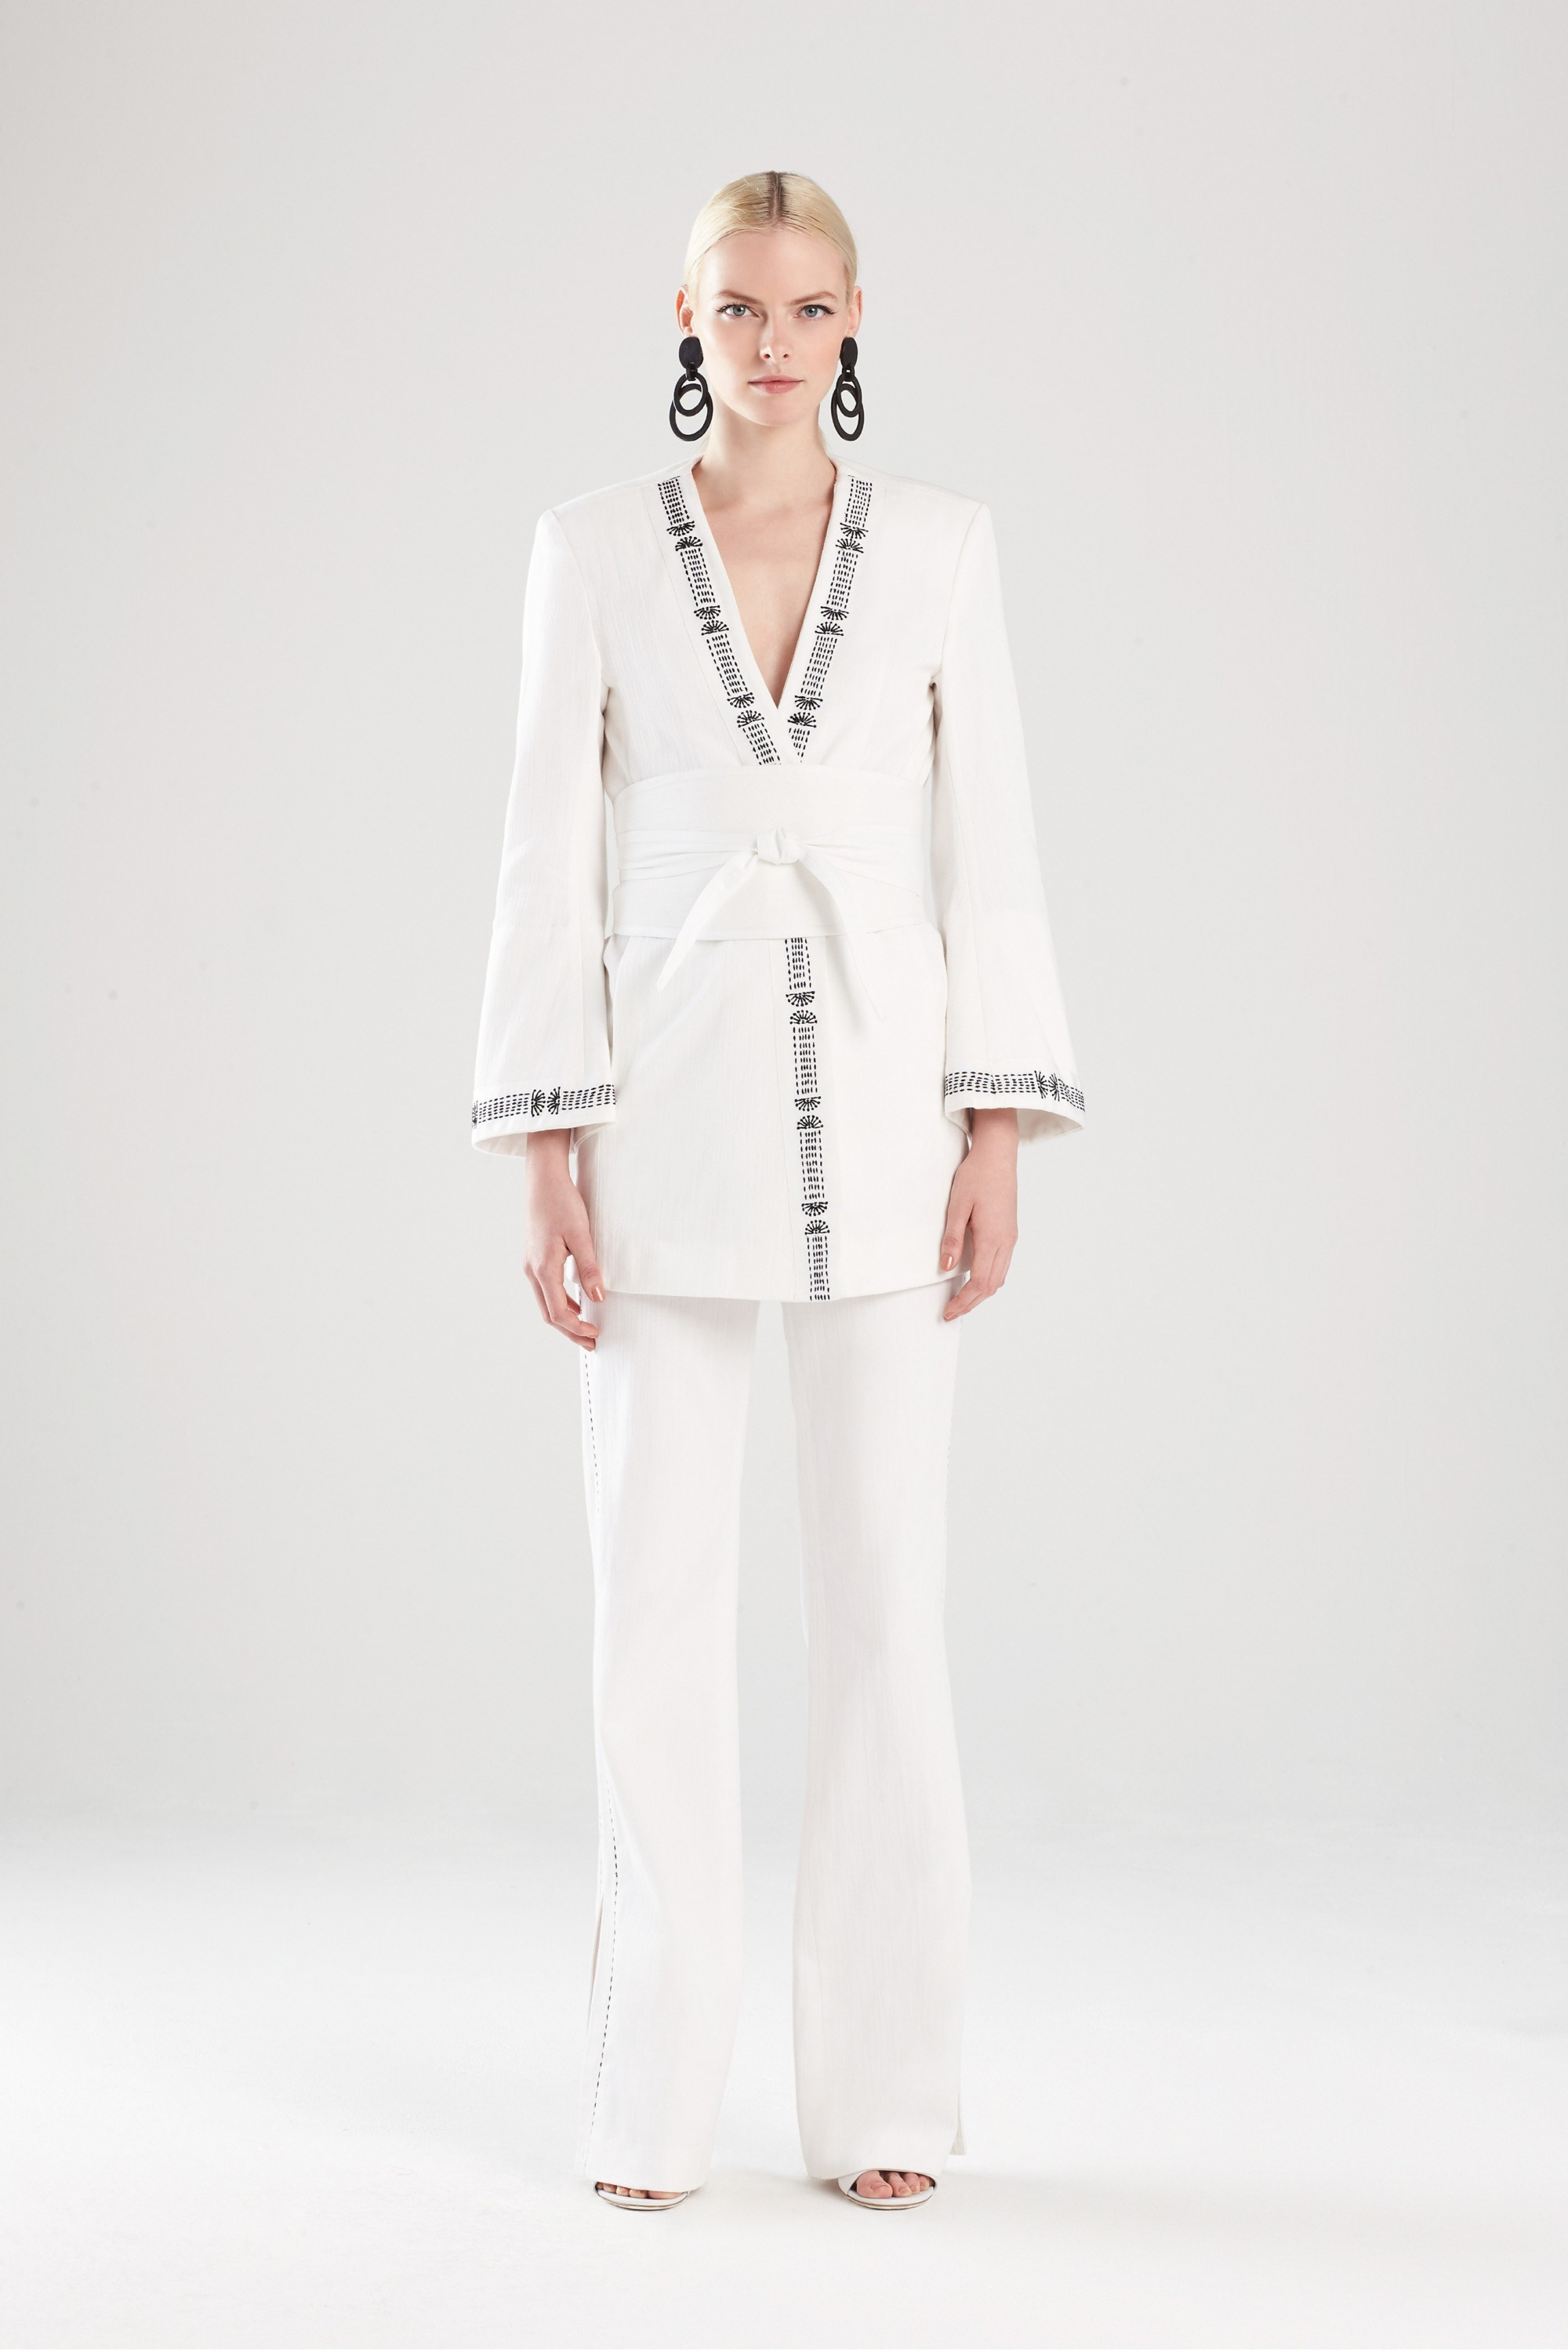 Josie Natori Resort 2019